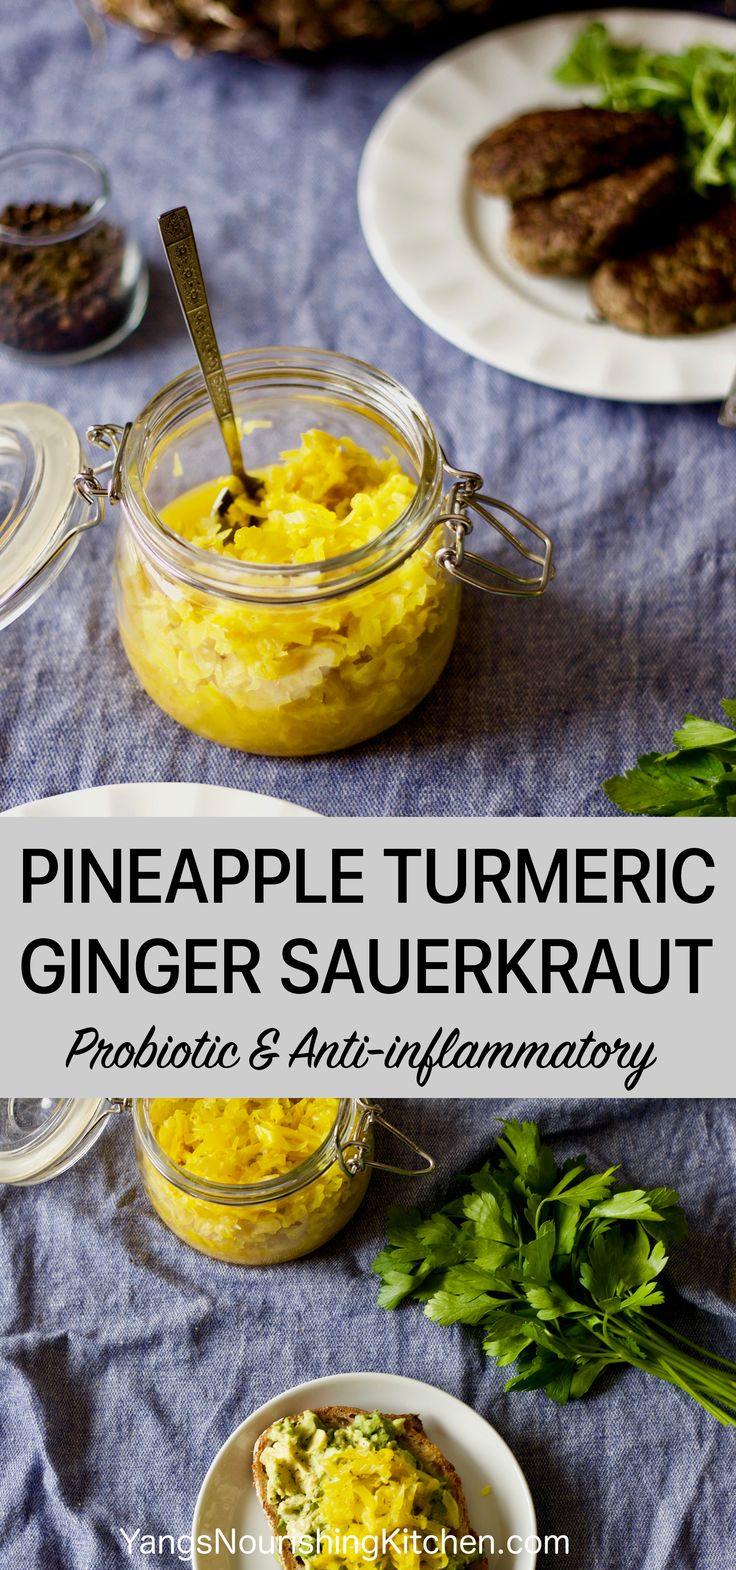 (Fermented) This Sauerkraut is loaded with flavours and anti-inflammatory health benefits from pineapple, turmeric and ginger. Sauerkrauts are probiotic, nutrient-dense, good for digestion, and a natural way to preserve.